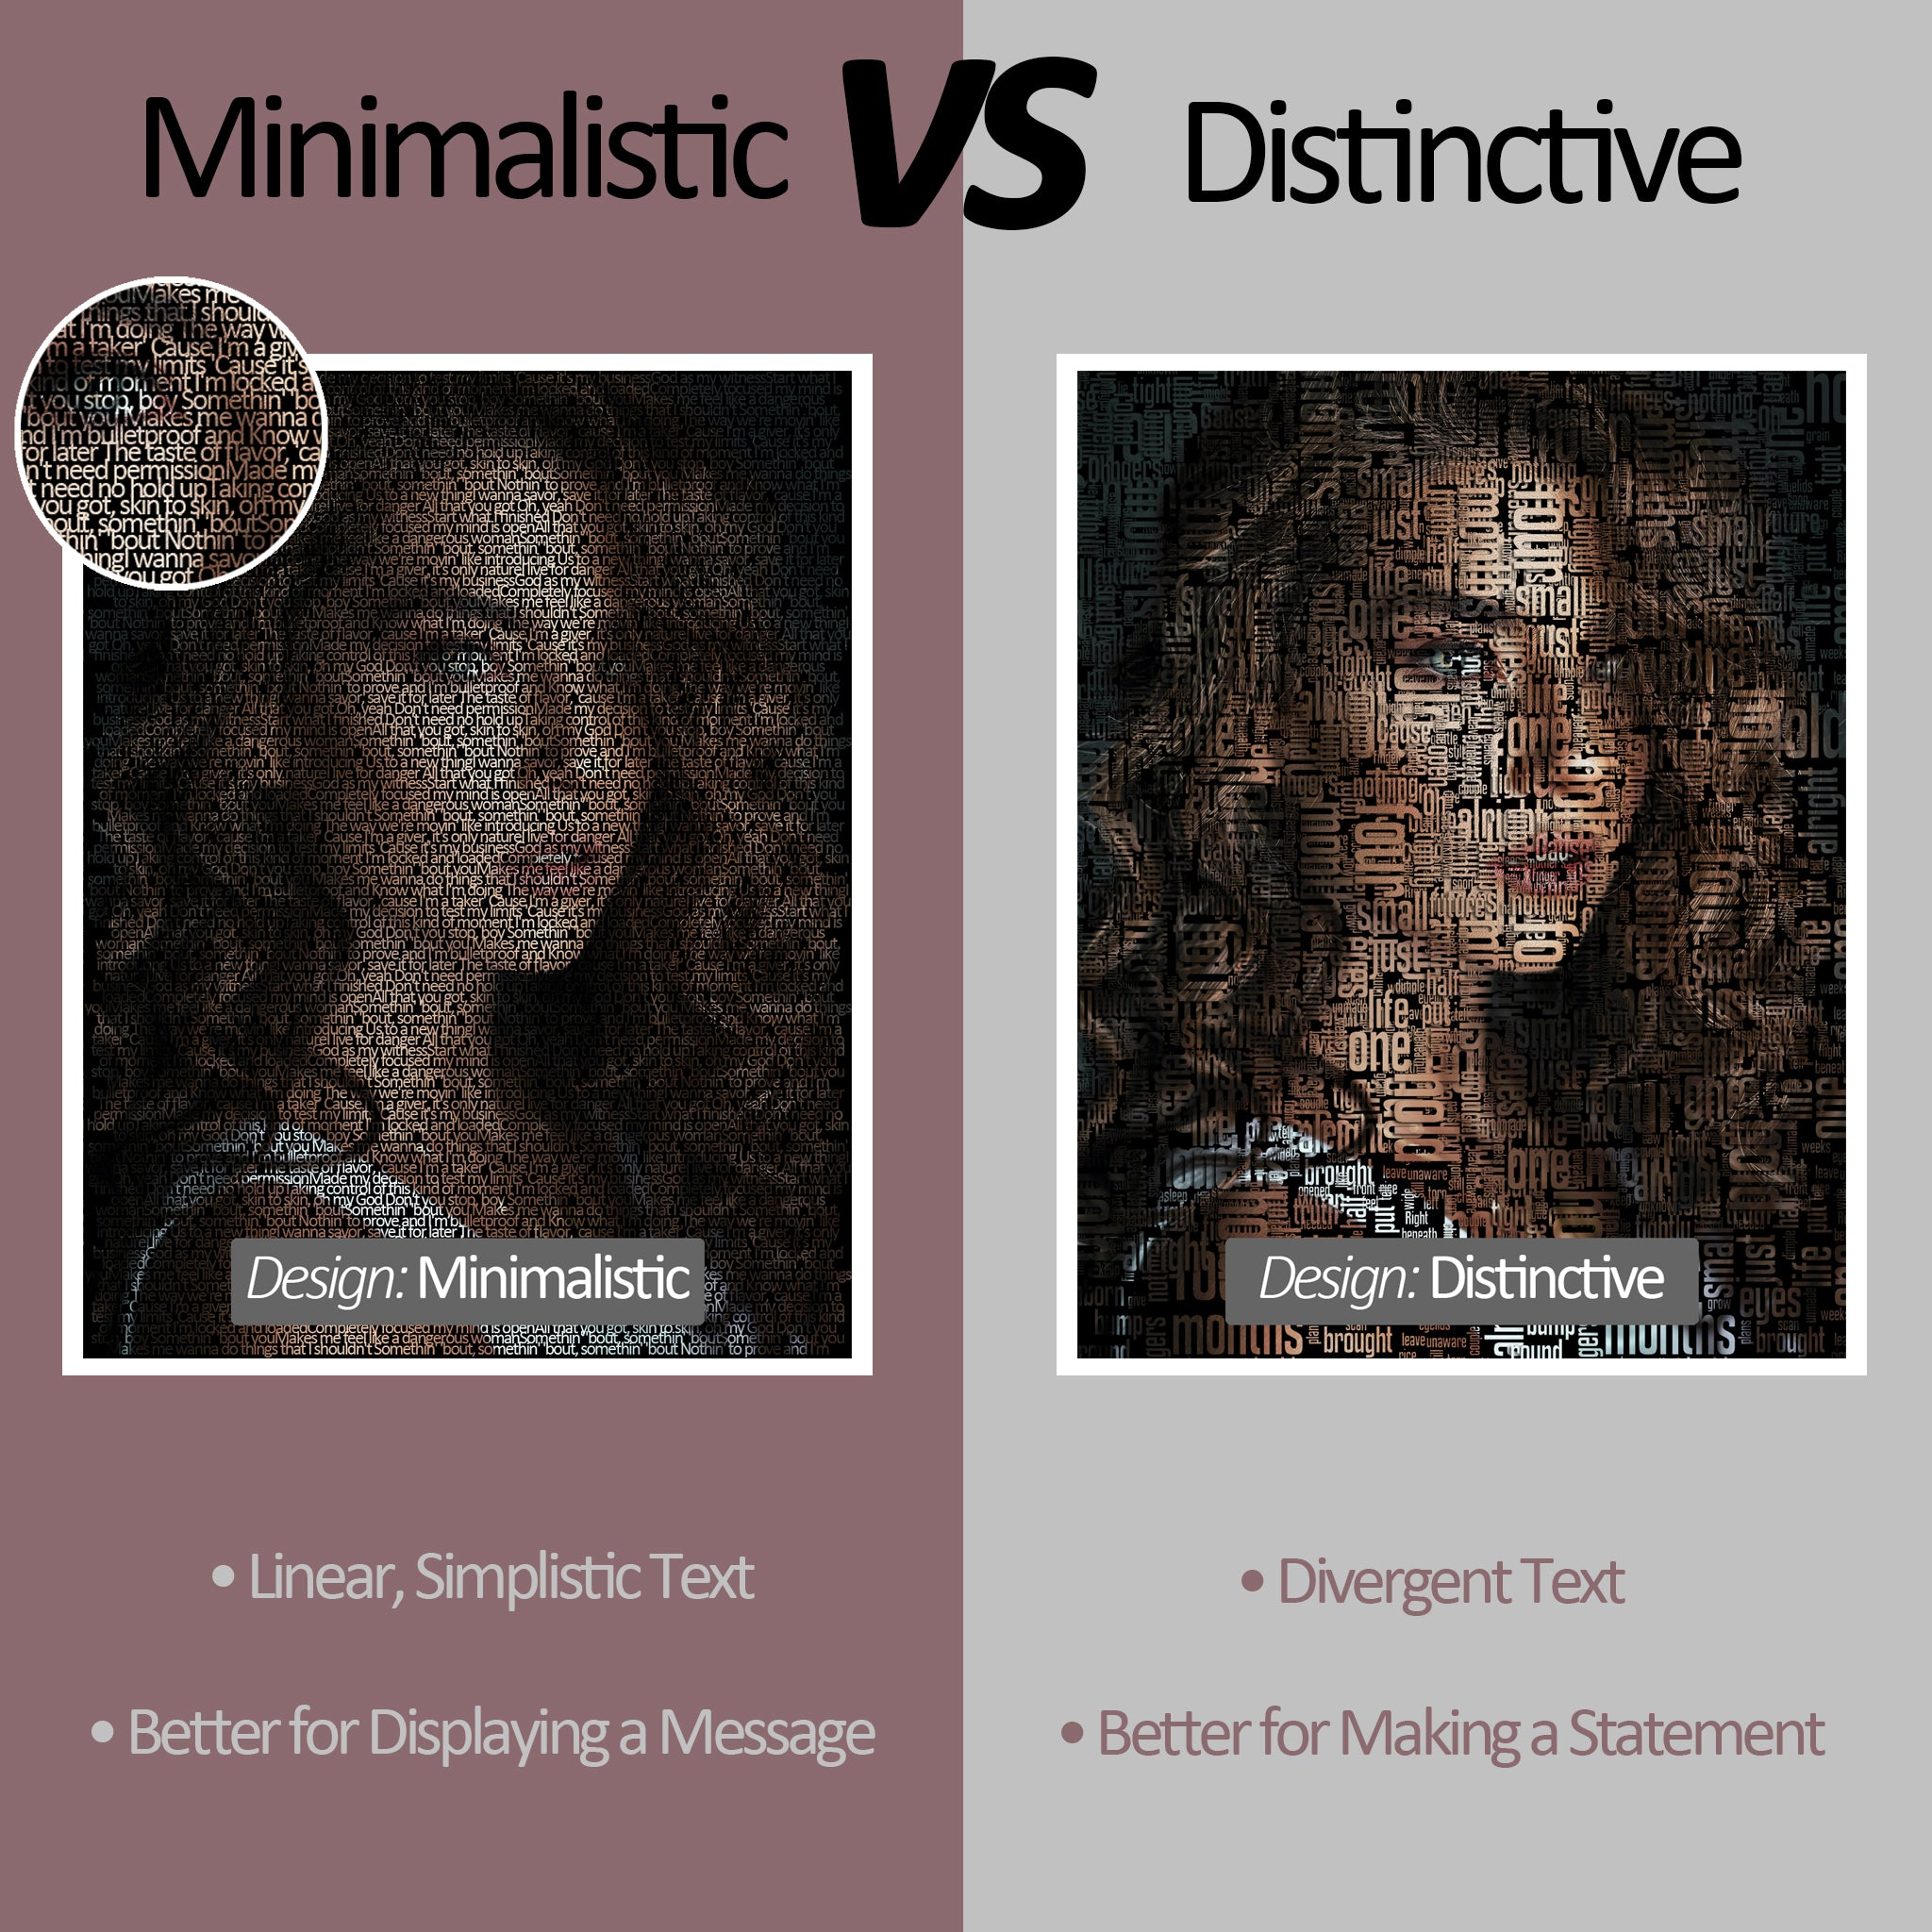 Difference between Minimalistic and Distinctive Design